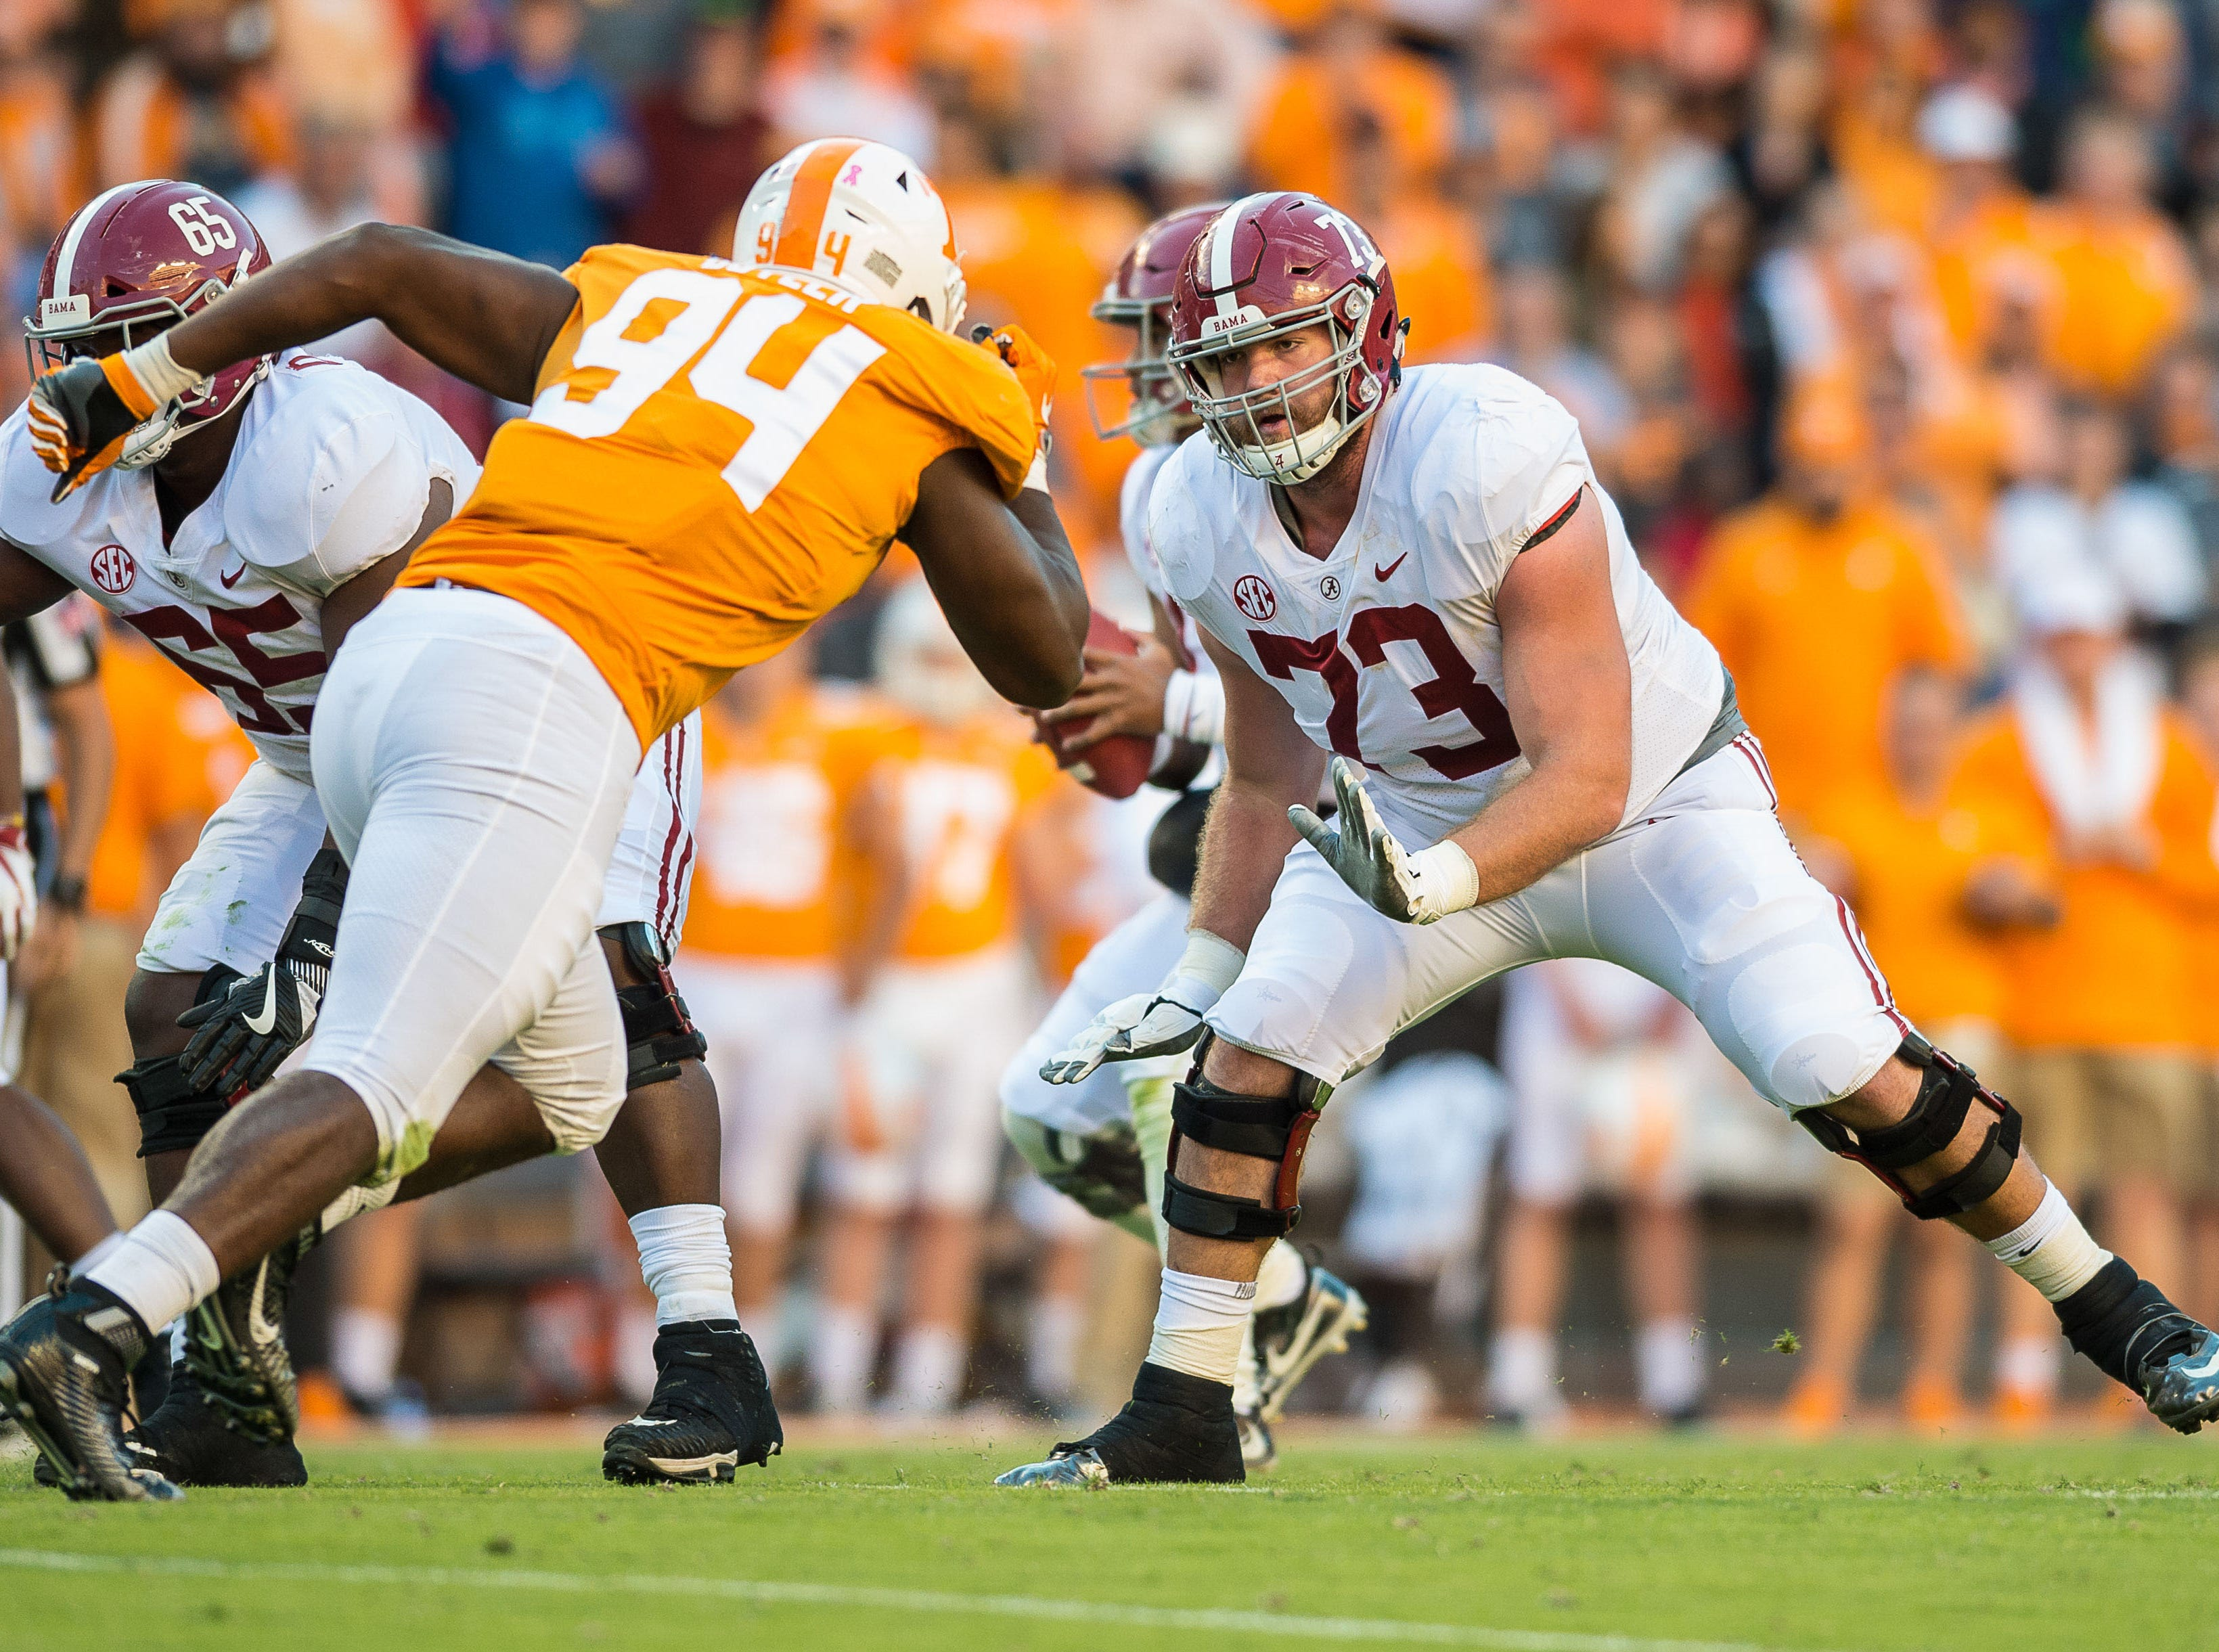 Alabama Crimson Tide offensive lineman Jonah Williams is a trendy pick for the Arizona Cardinals in NFL mock drafts for the first round of the 2019 NFL draft.